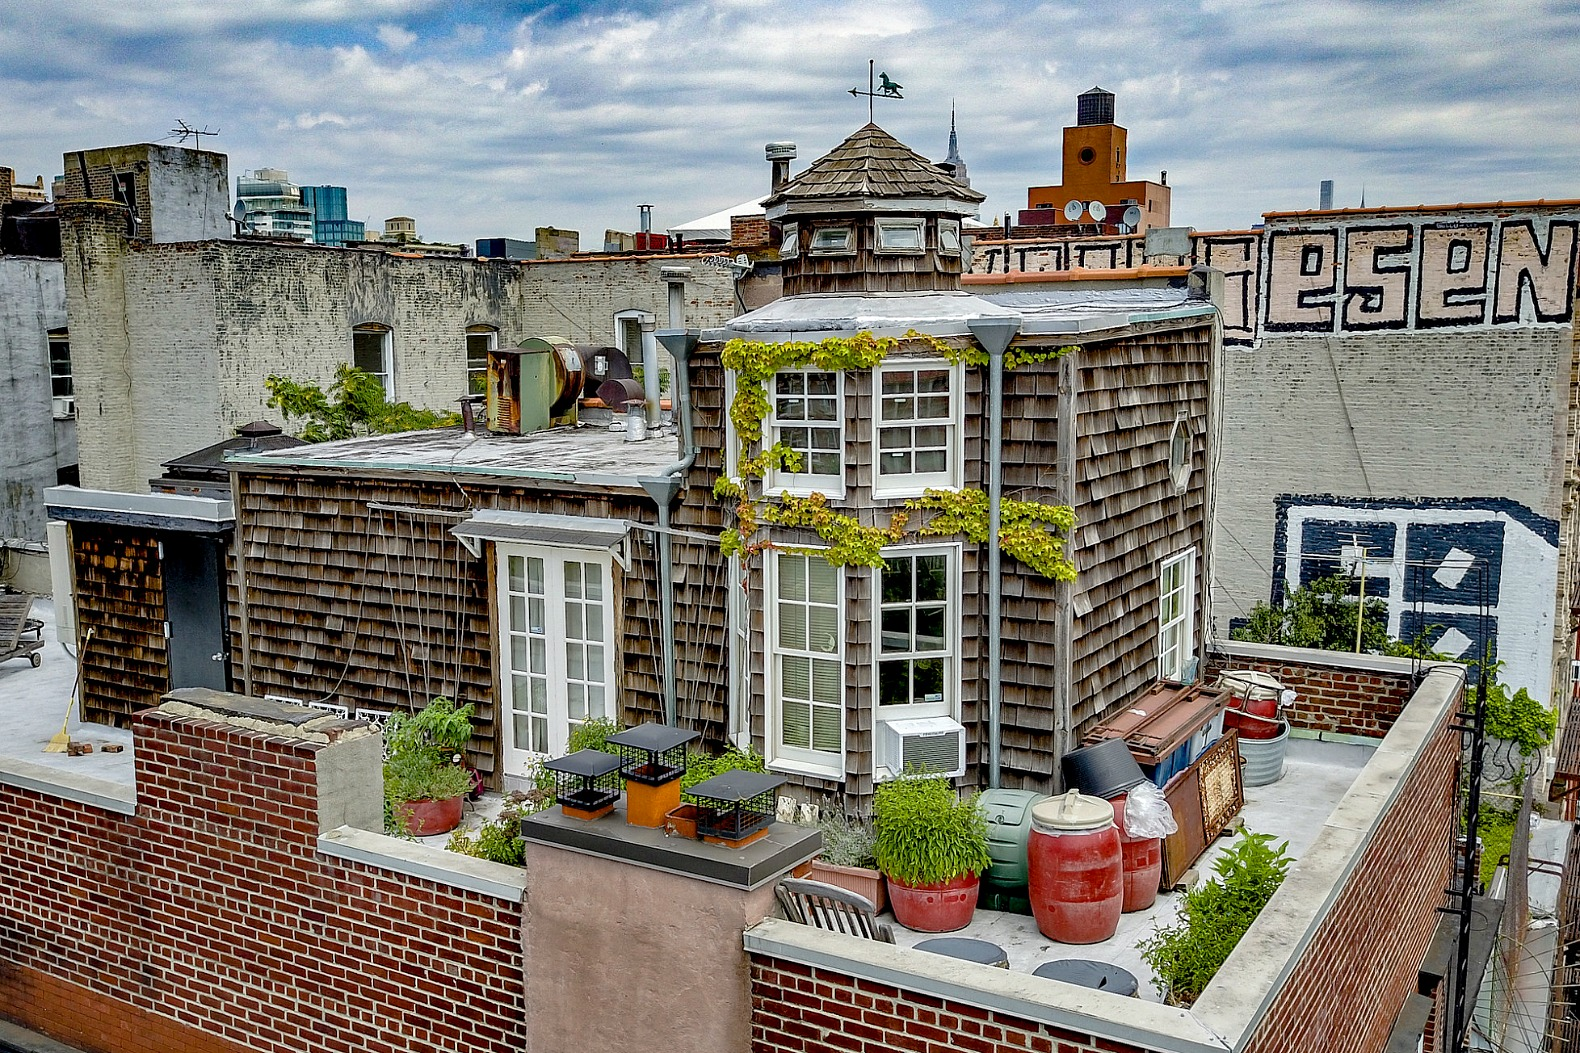 Magical Cape Cod-style cottage perched on NYC rooftop goes on sale for $3.5M